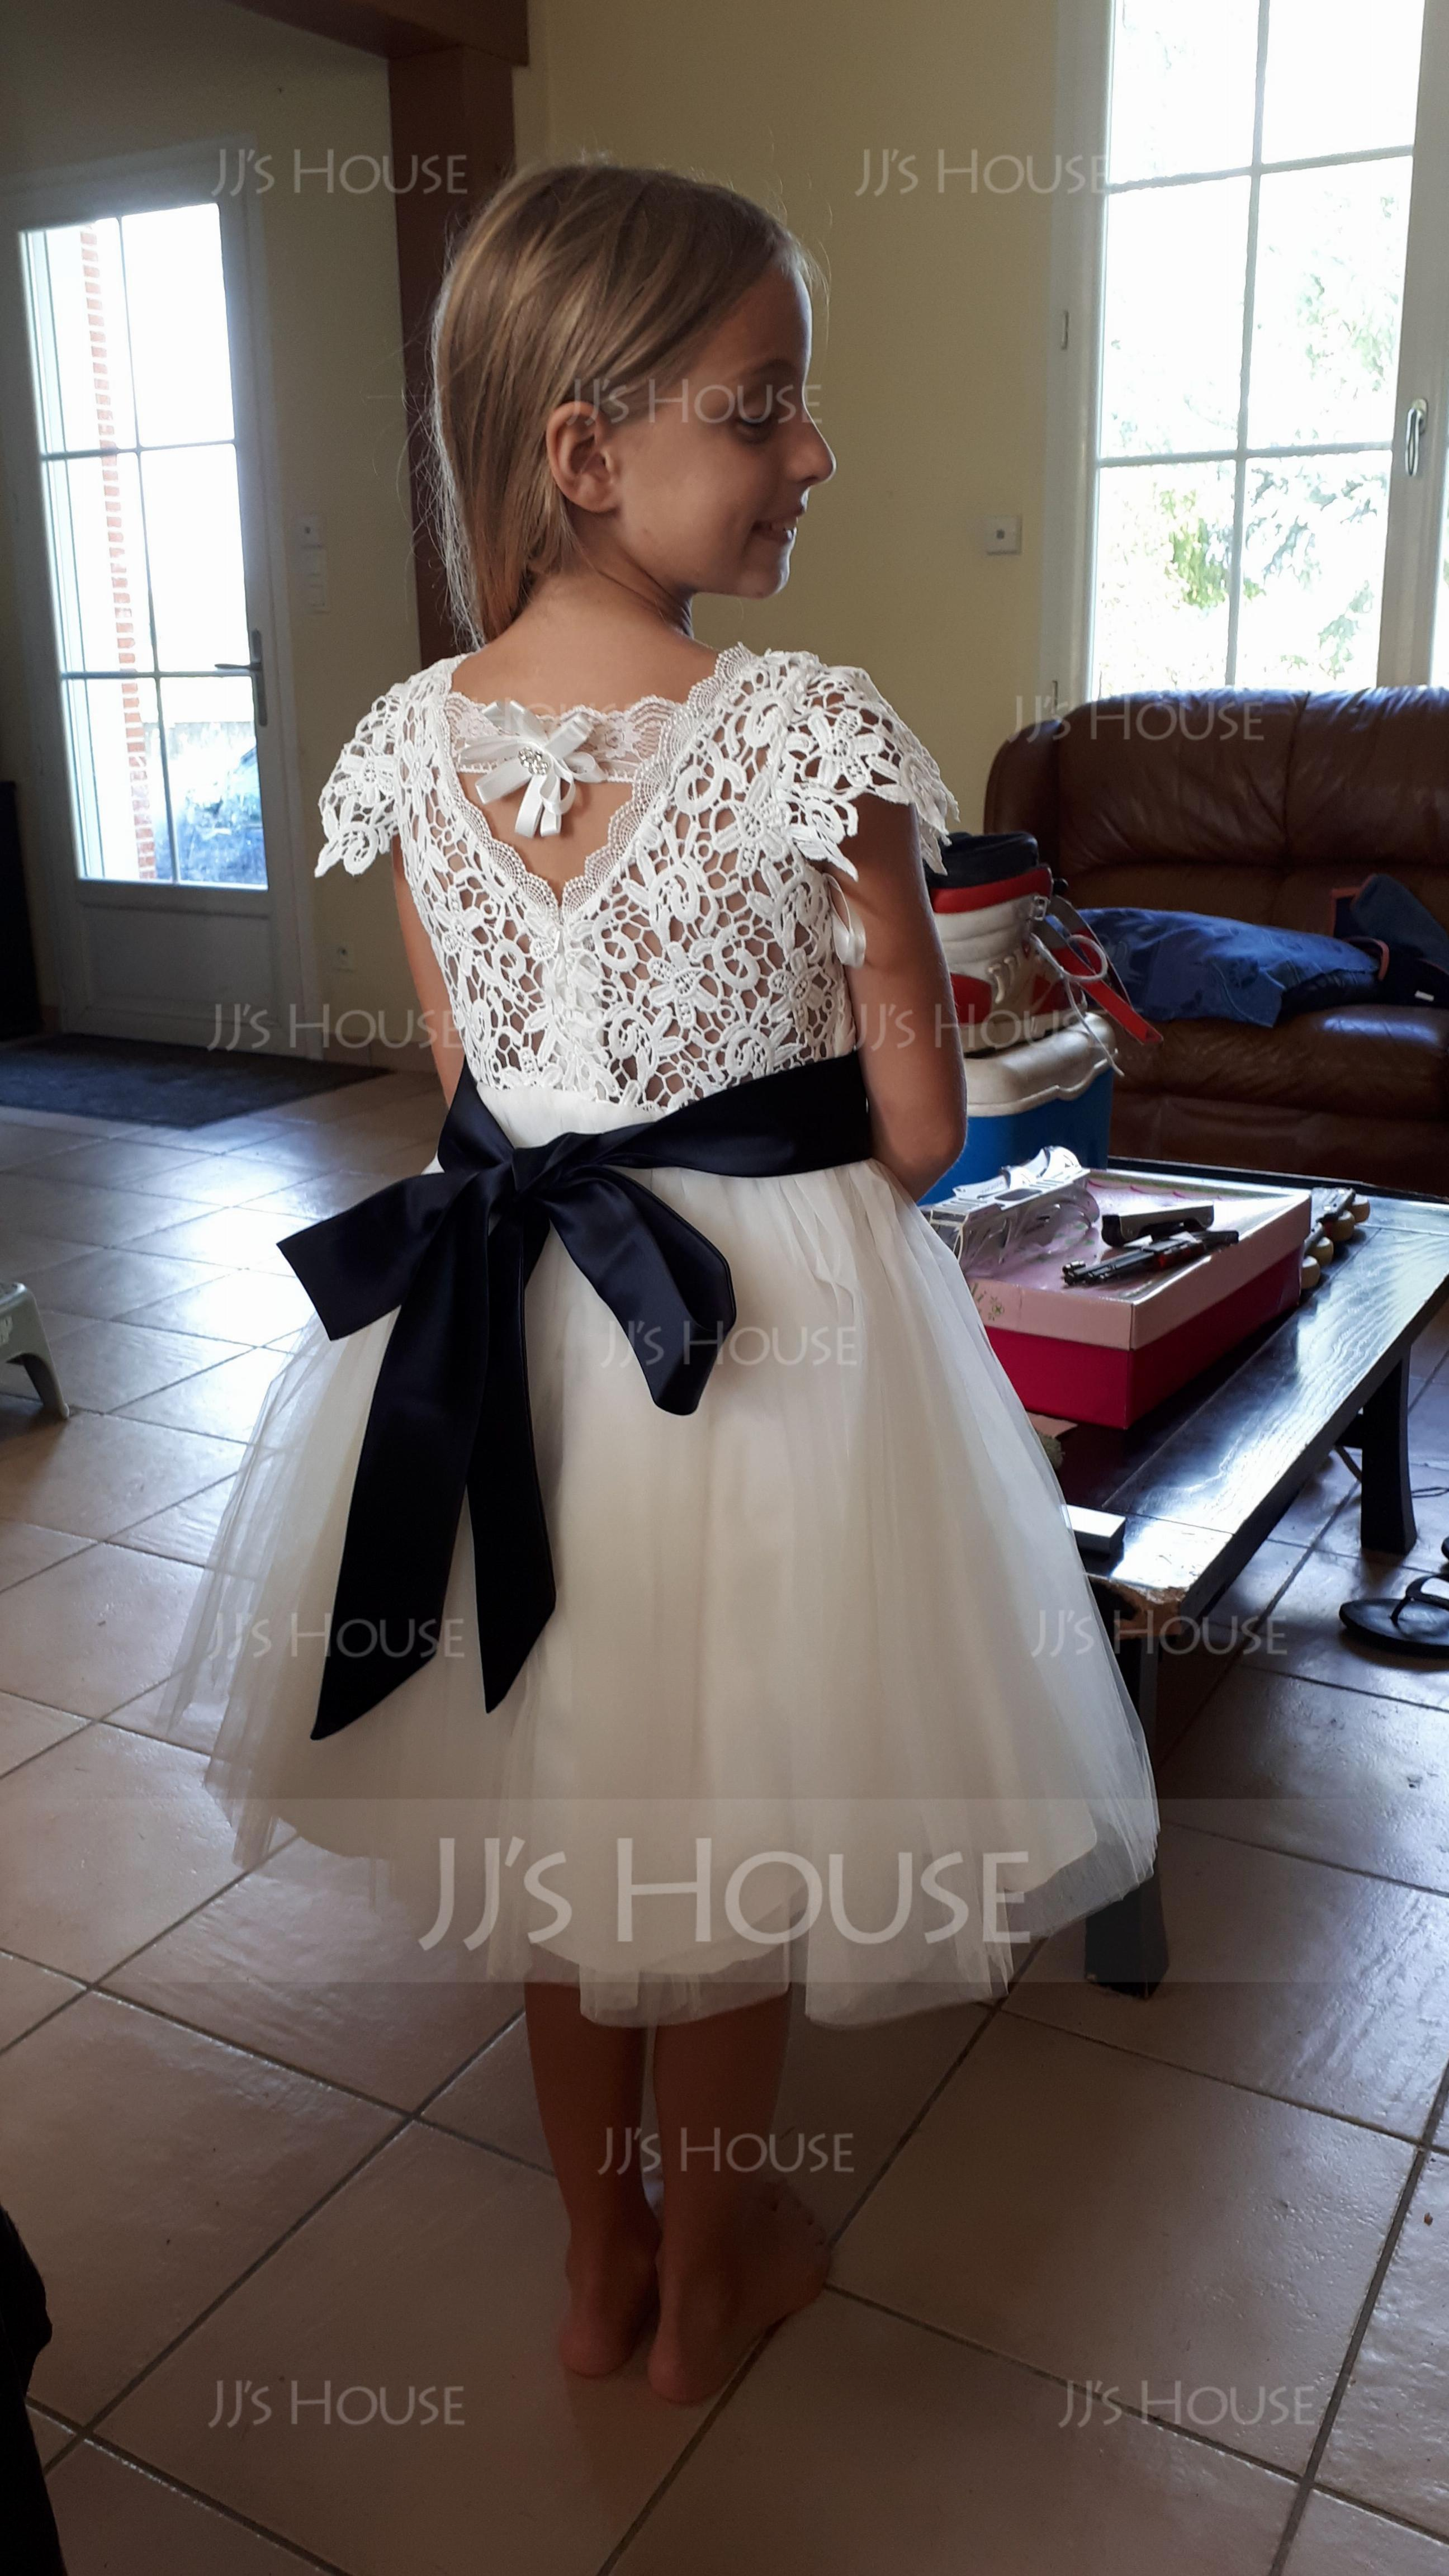 A-Line/Princess Knee-length Flower Girl Dress - Tulle/Lace Short Sleeves Scoop Neck With Sash/Flower(s)/Back Hole (010104926)